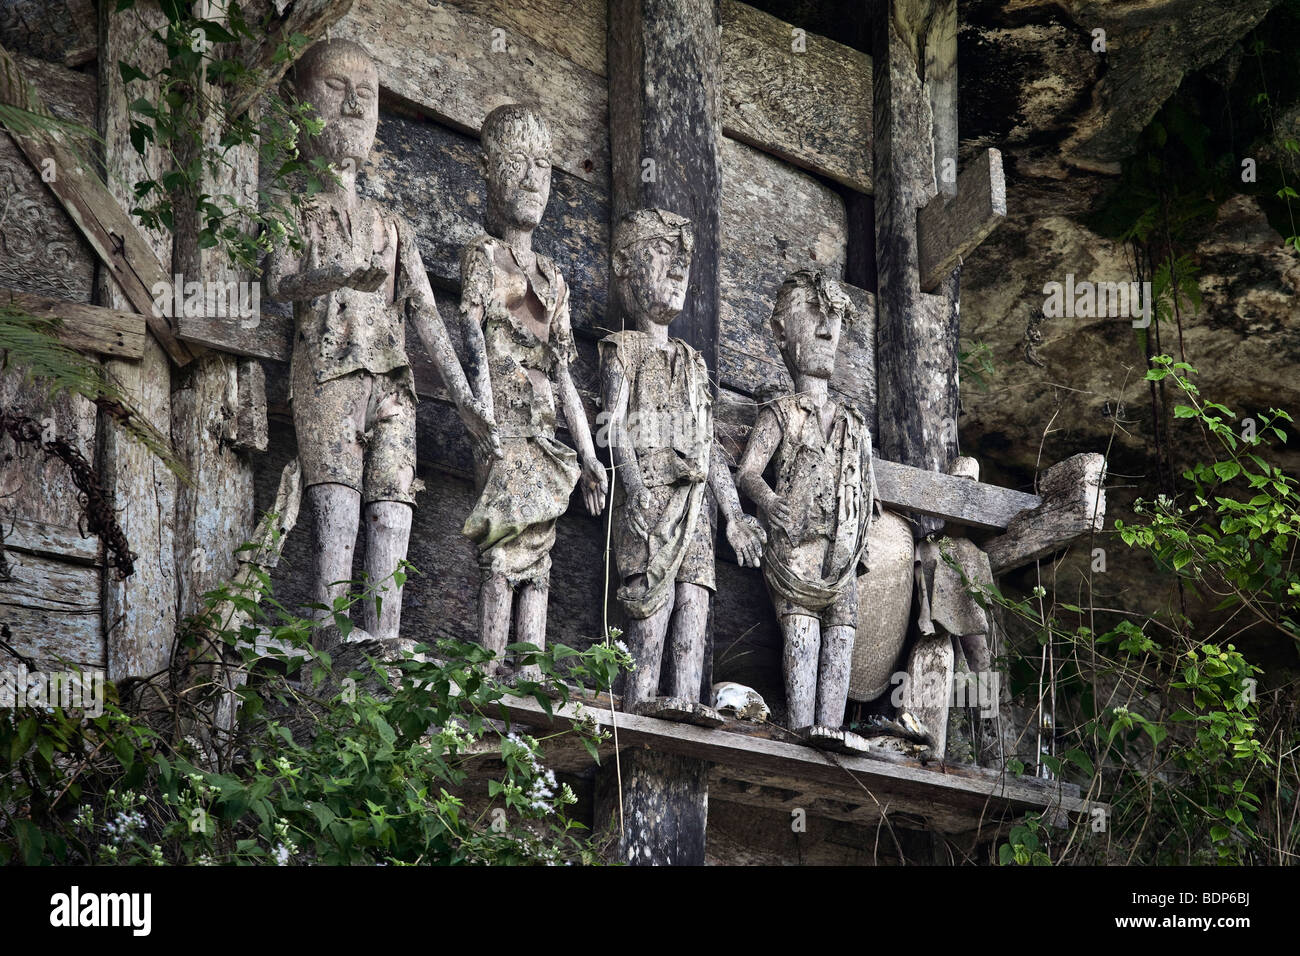 Indonesia, Sulawesi, Tana Toraja area, Marante village, stone graves with wooden effigies of the dead known as tau Stock Photo